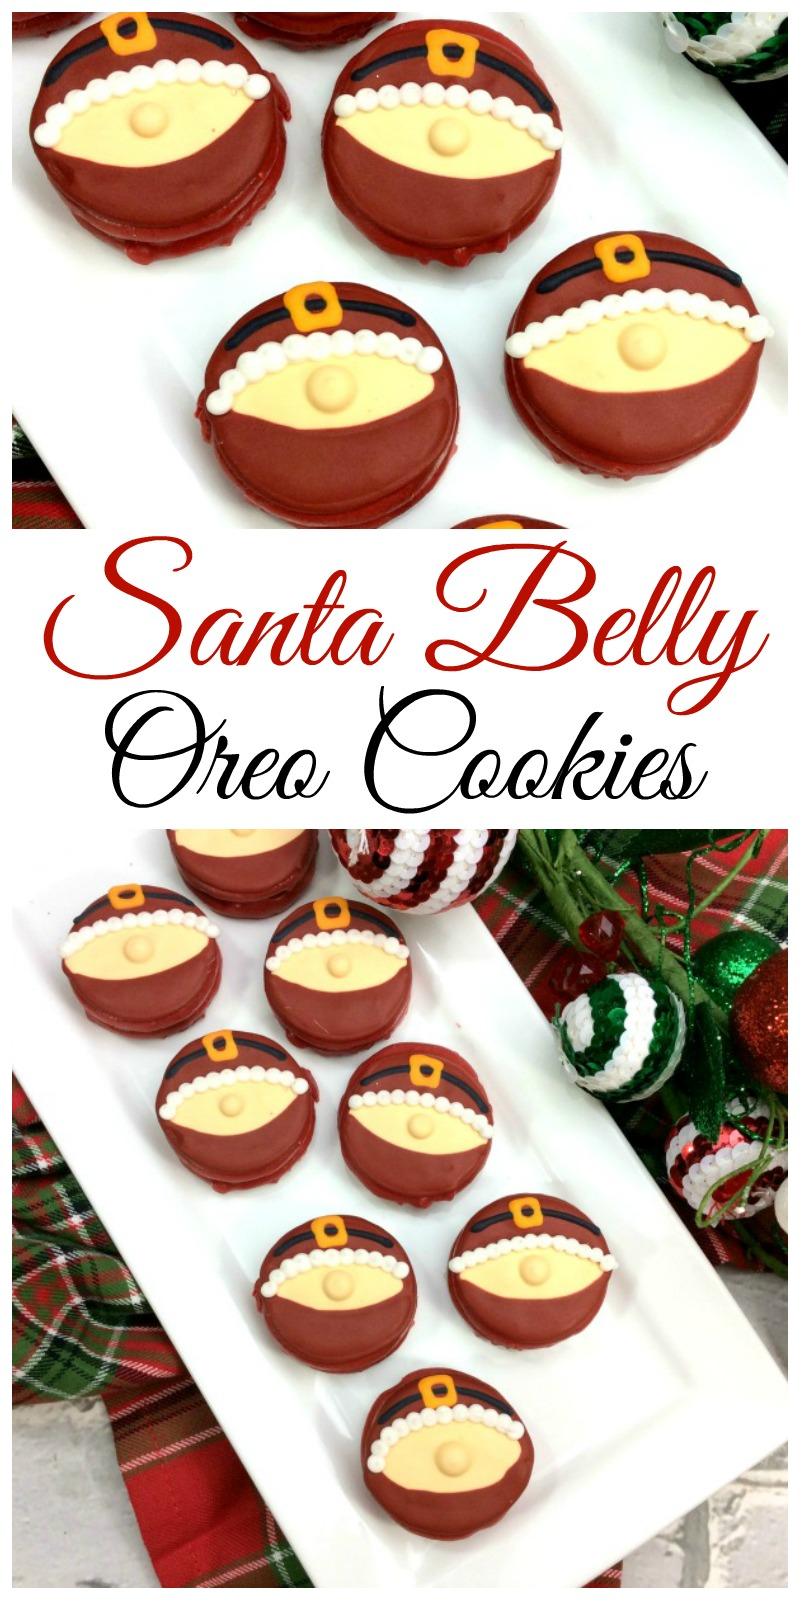 Santa Belly Oreo Cookies